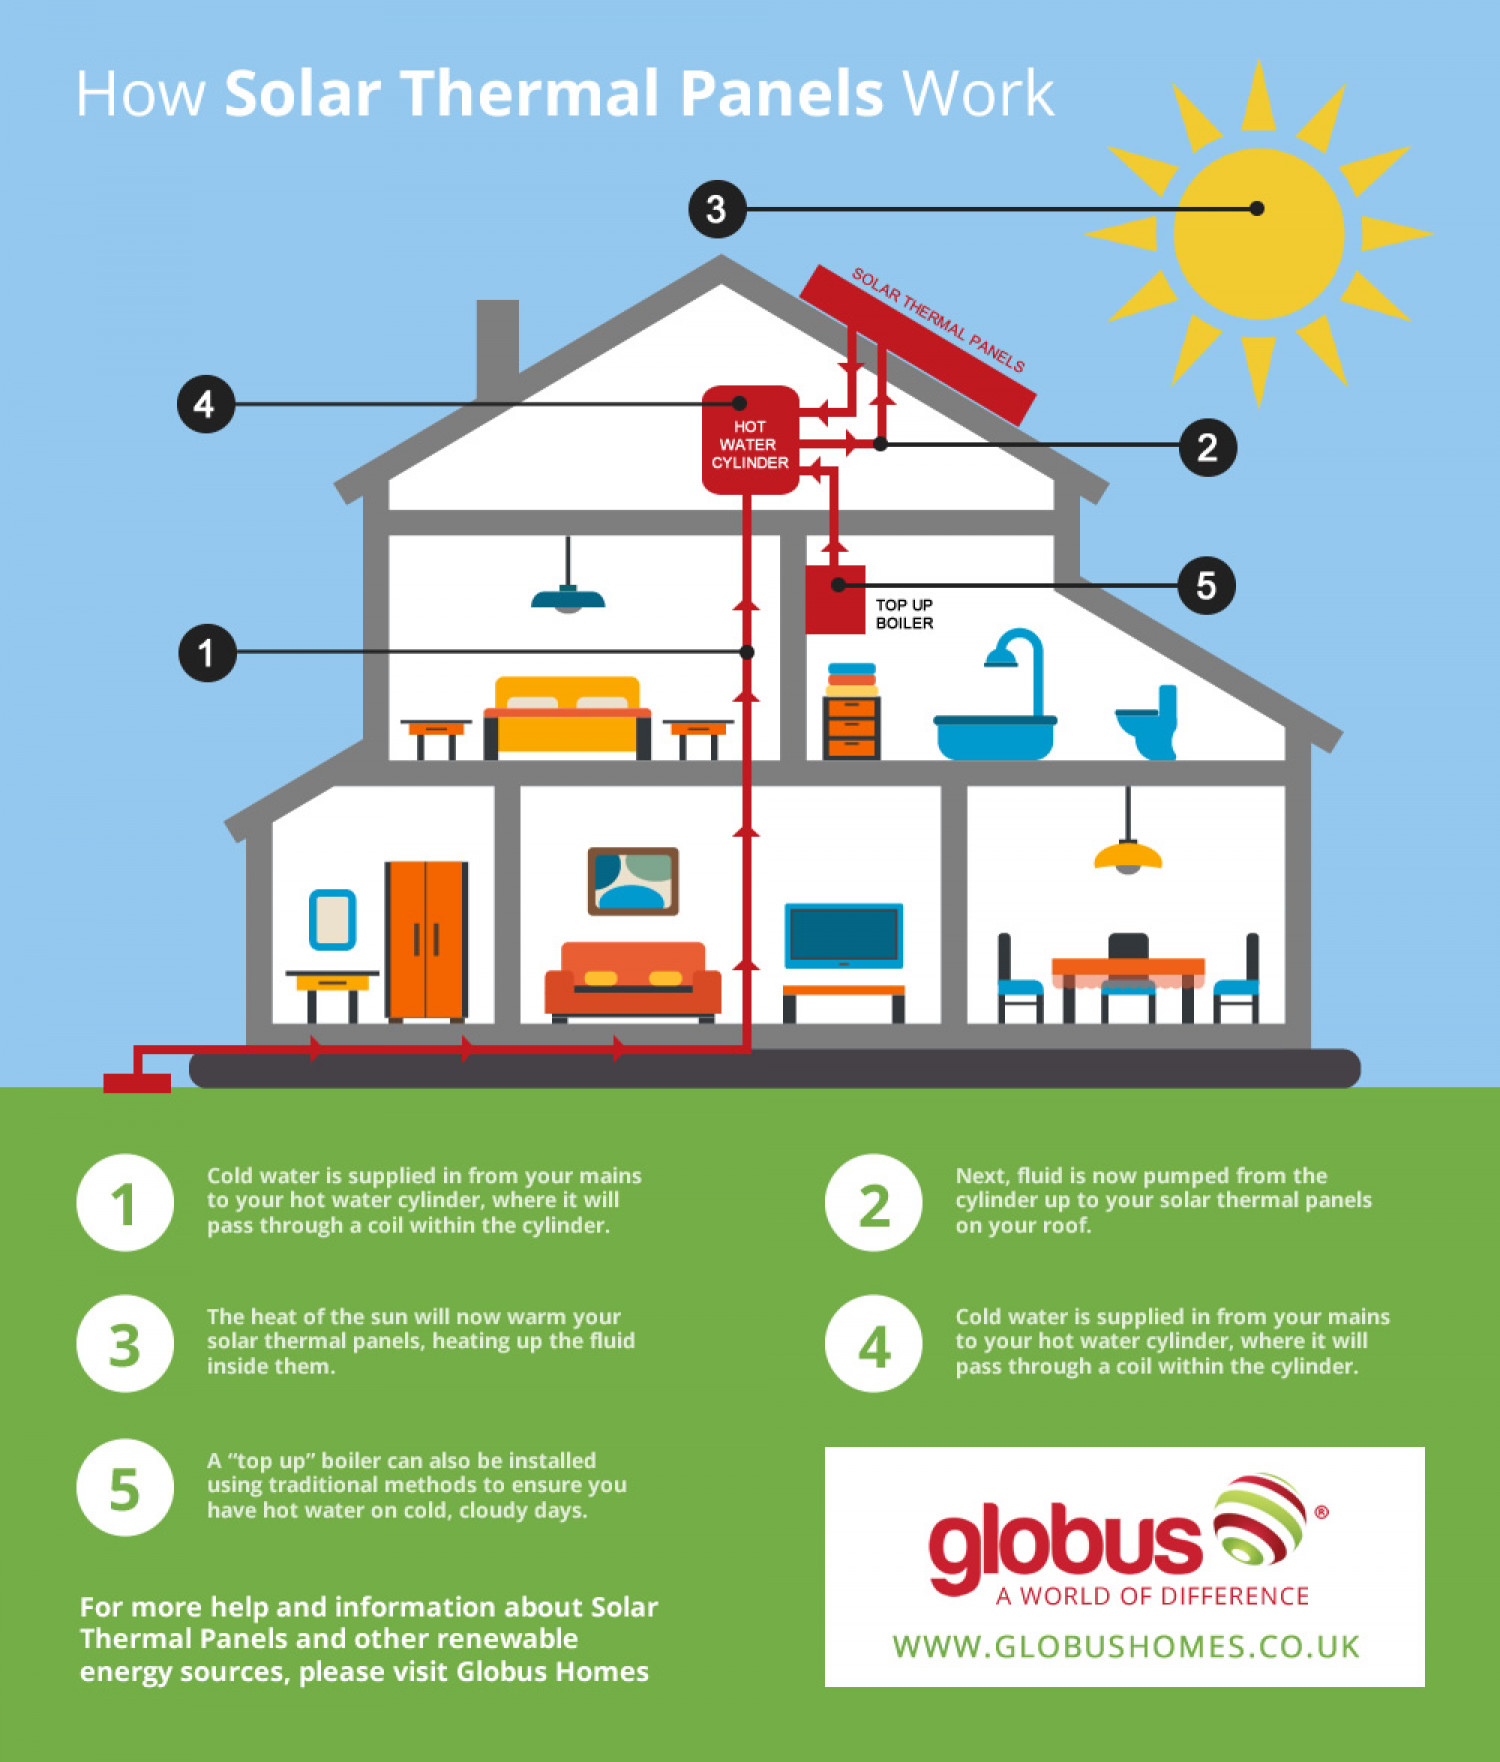 Solar Thermal Kits 101 - Definitive Guide Infographic